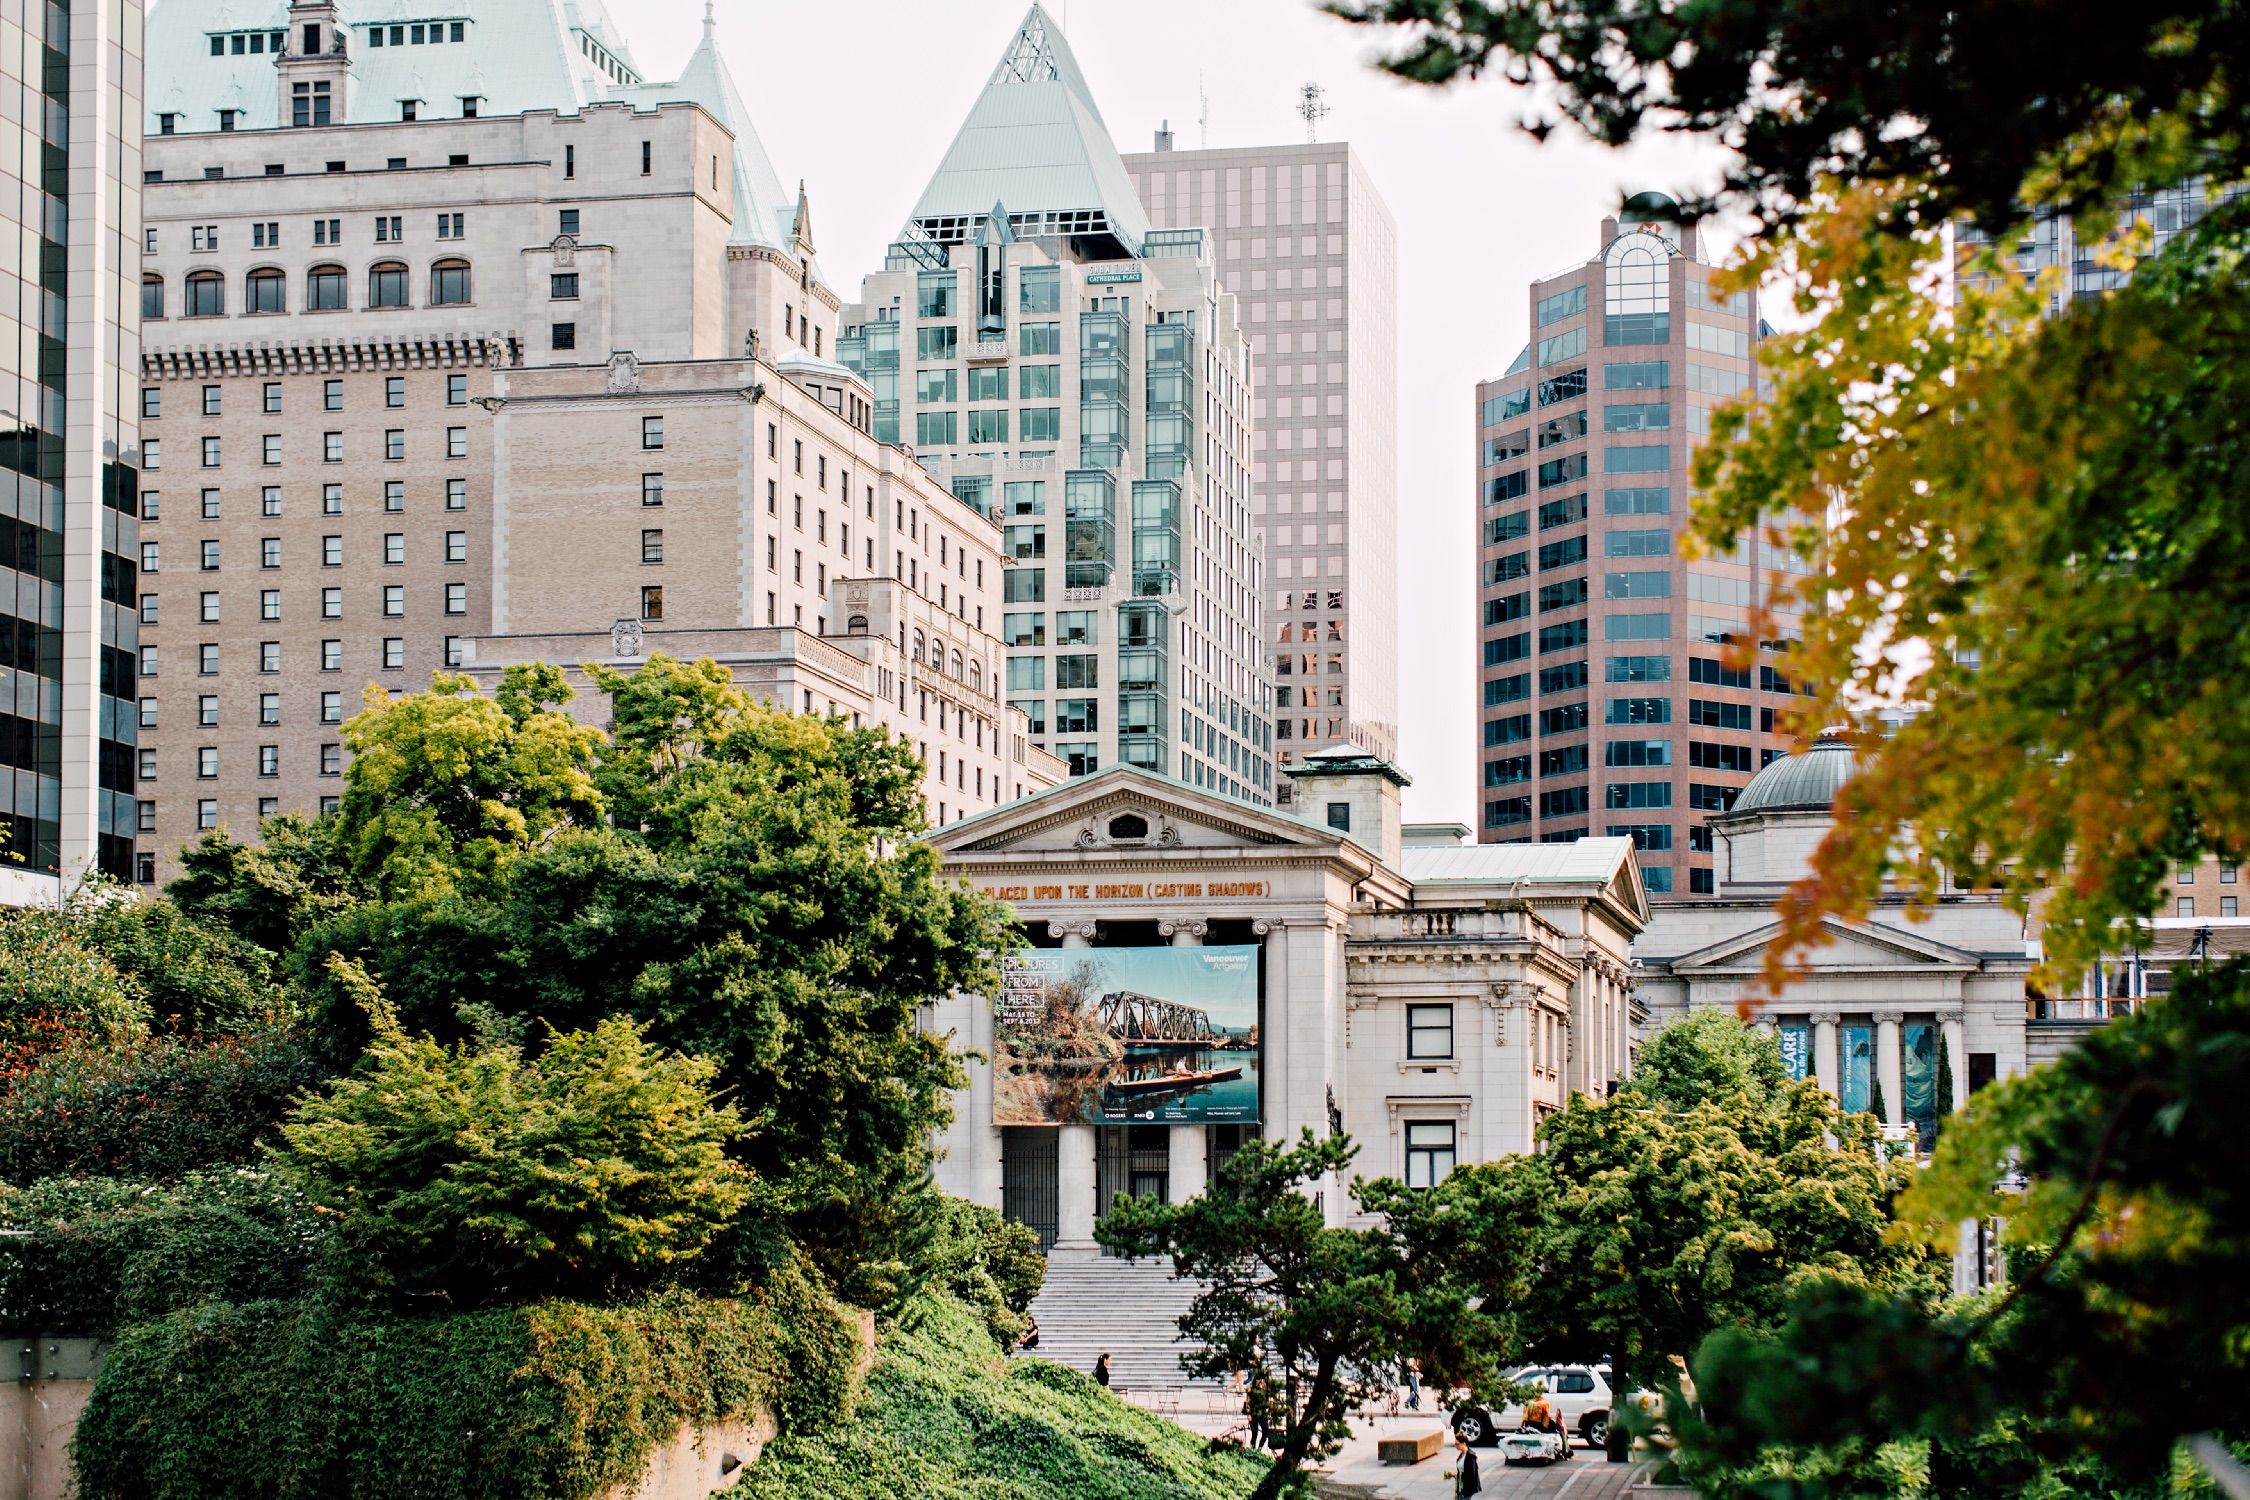 The Vancouver Art Gallery in Vancouver.